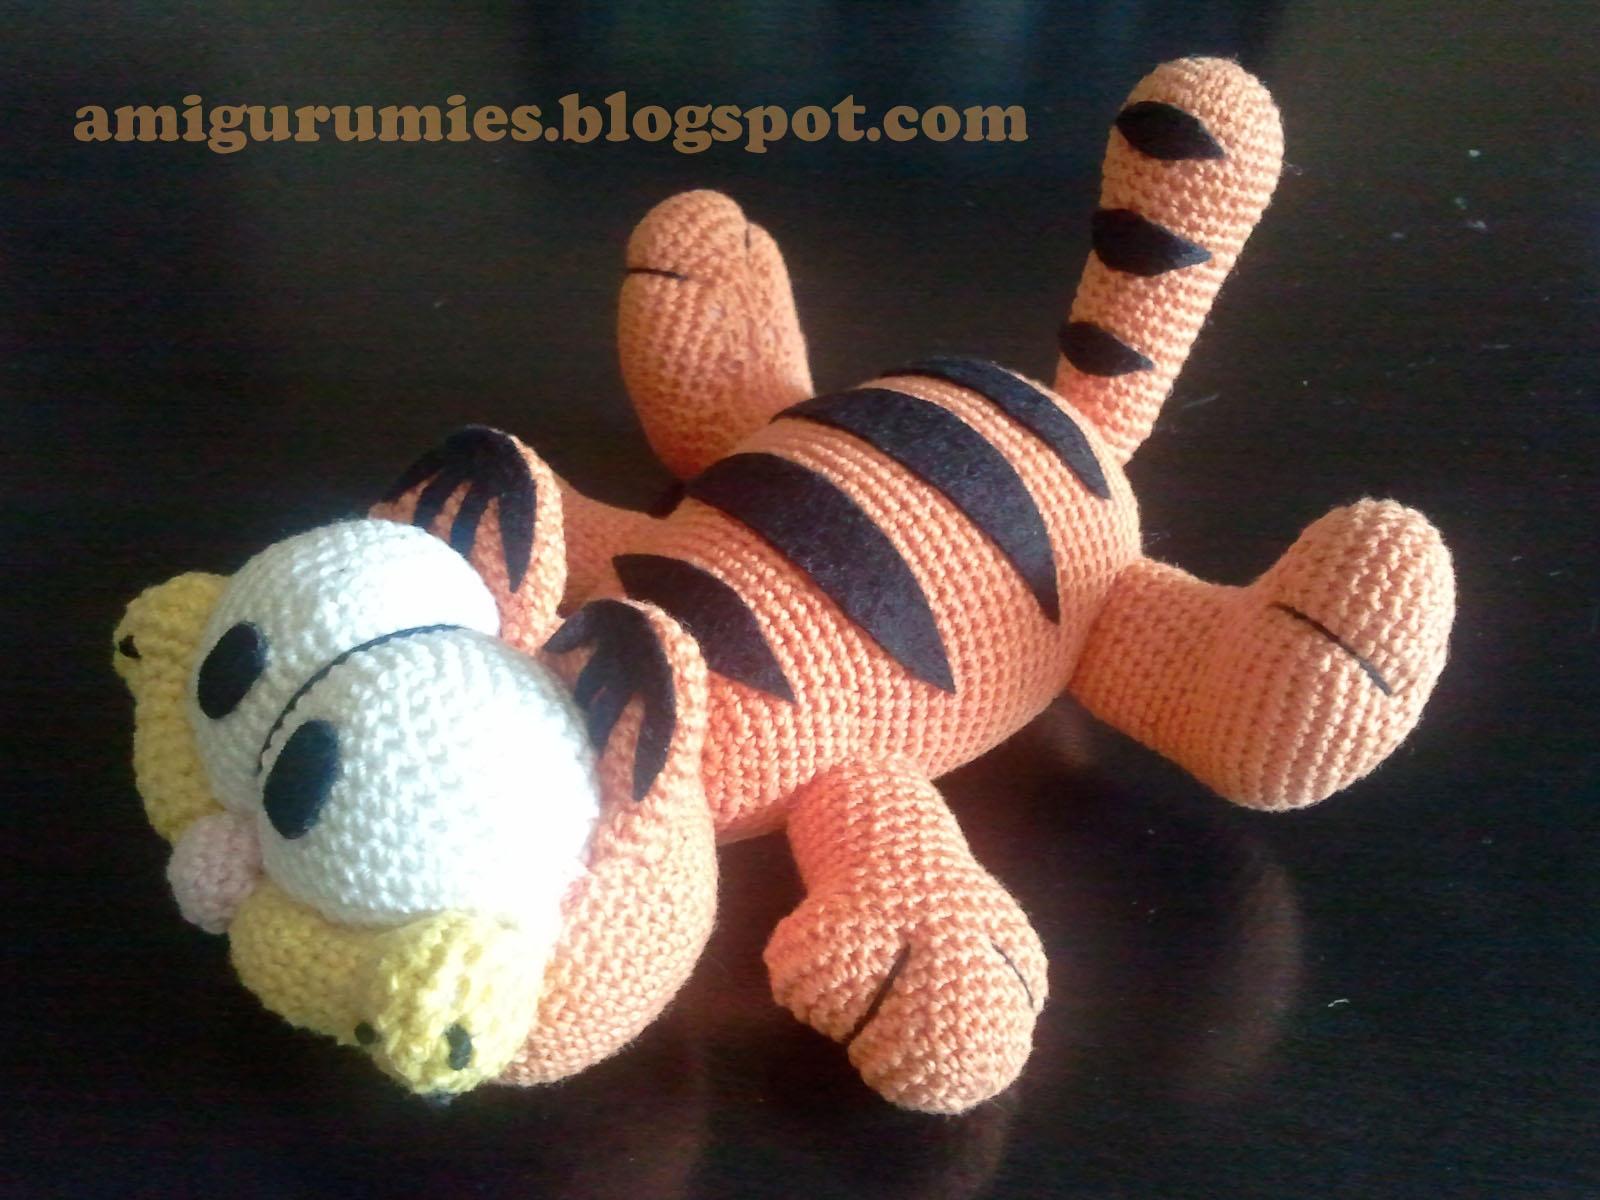 Amigurumi free patterns garfield : Garfield amigurumies